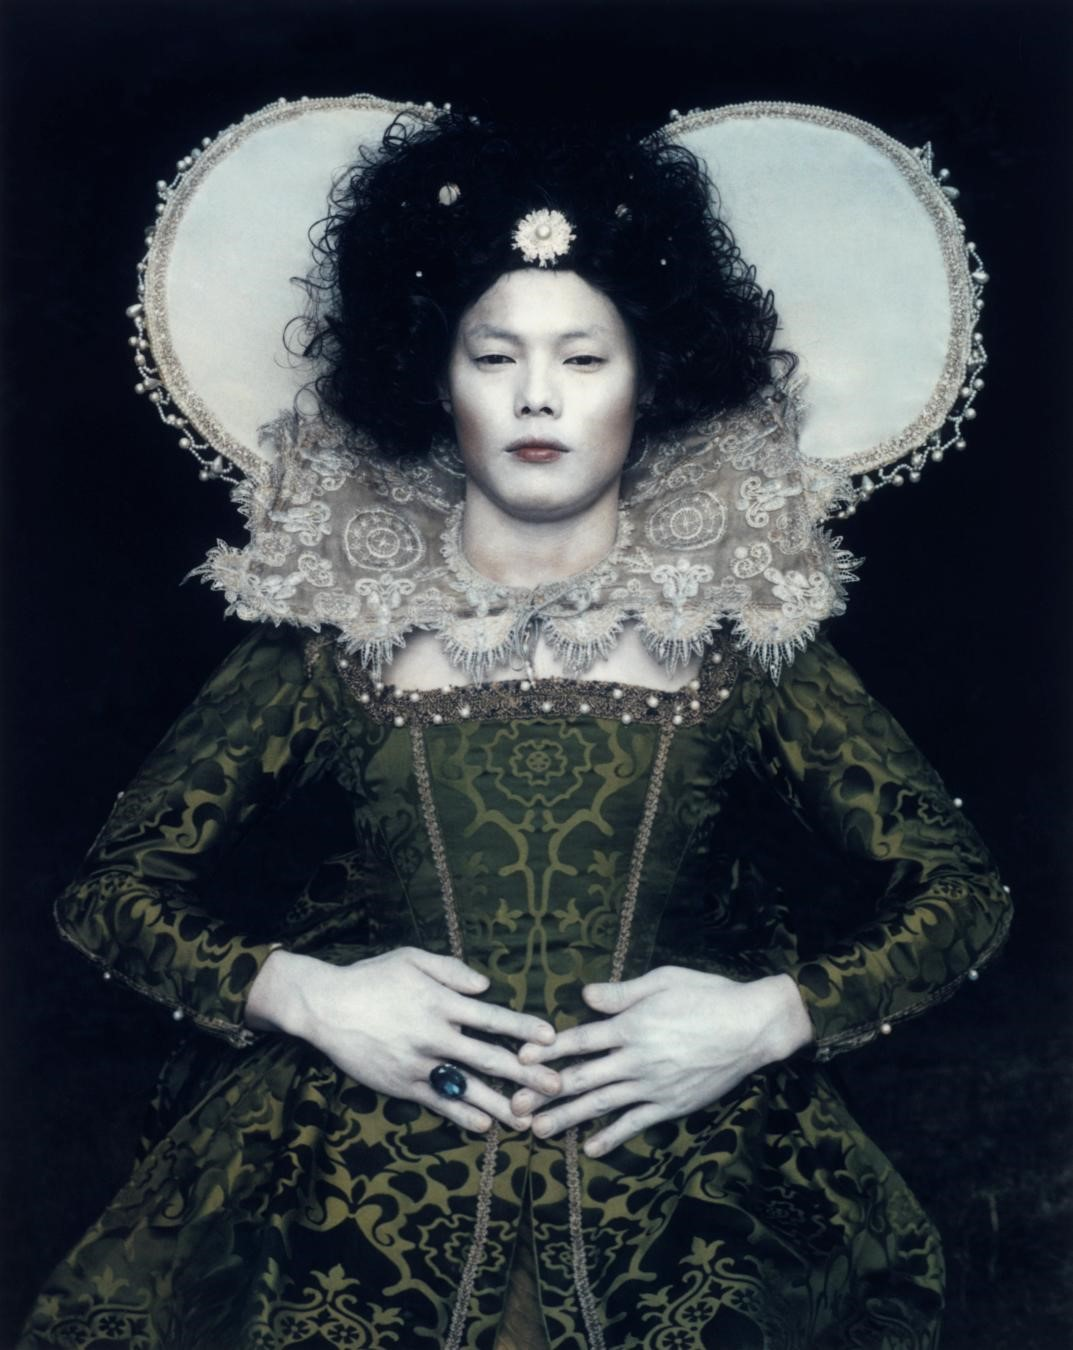 Chan-Hyo Bae, Existing in Costume_1, 2006